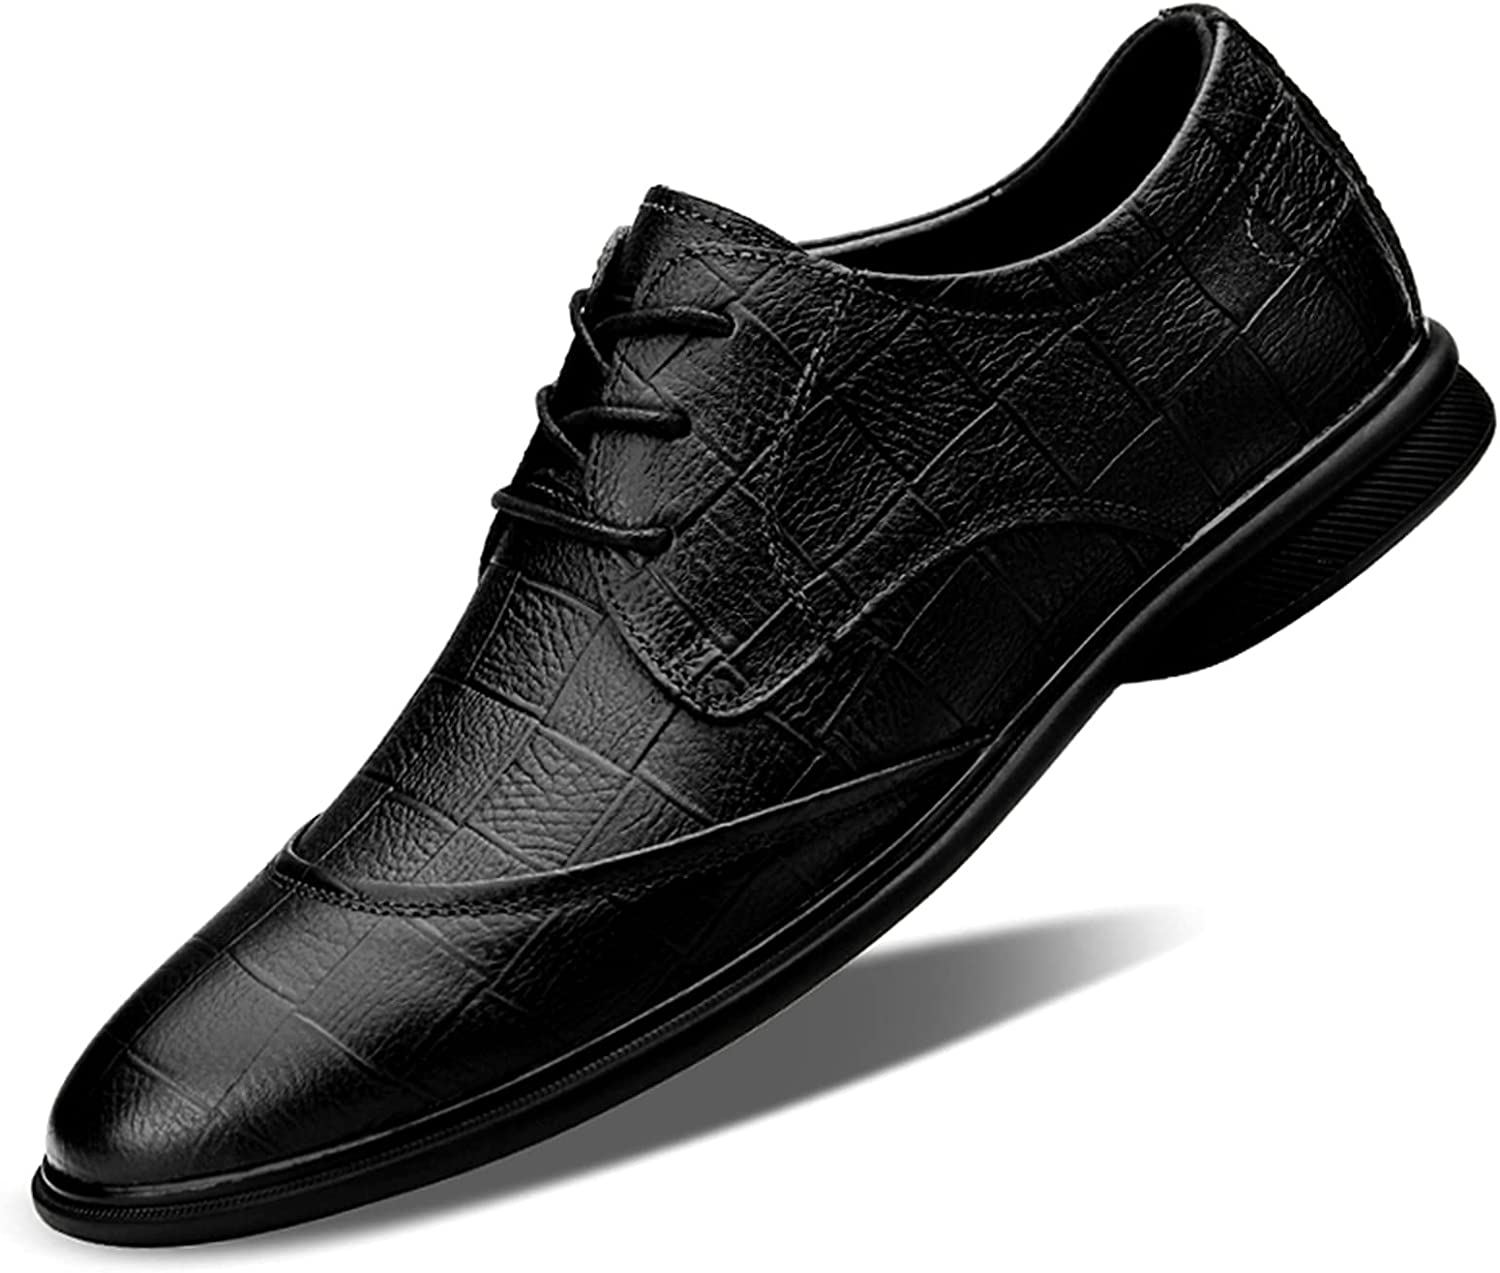 Men's Oxford Shoes Leather Checkered Dress Shoes Lace-up Business Casual Shoes